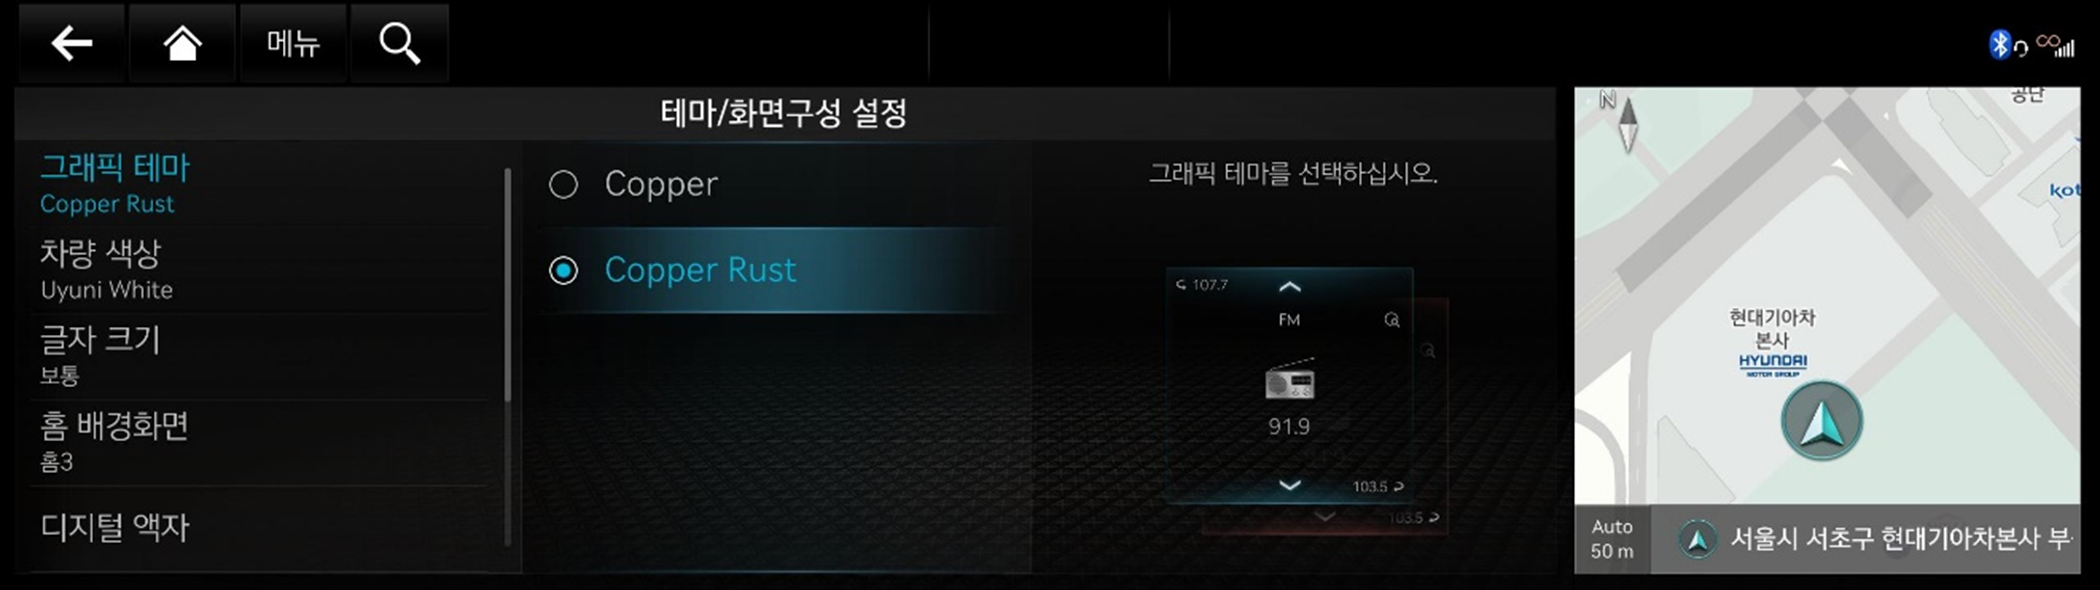 copperRust_제네시스.png